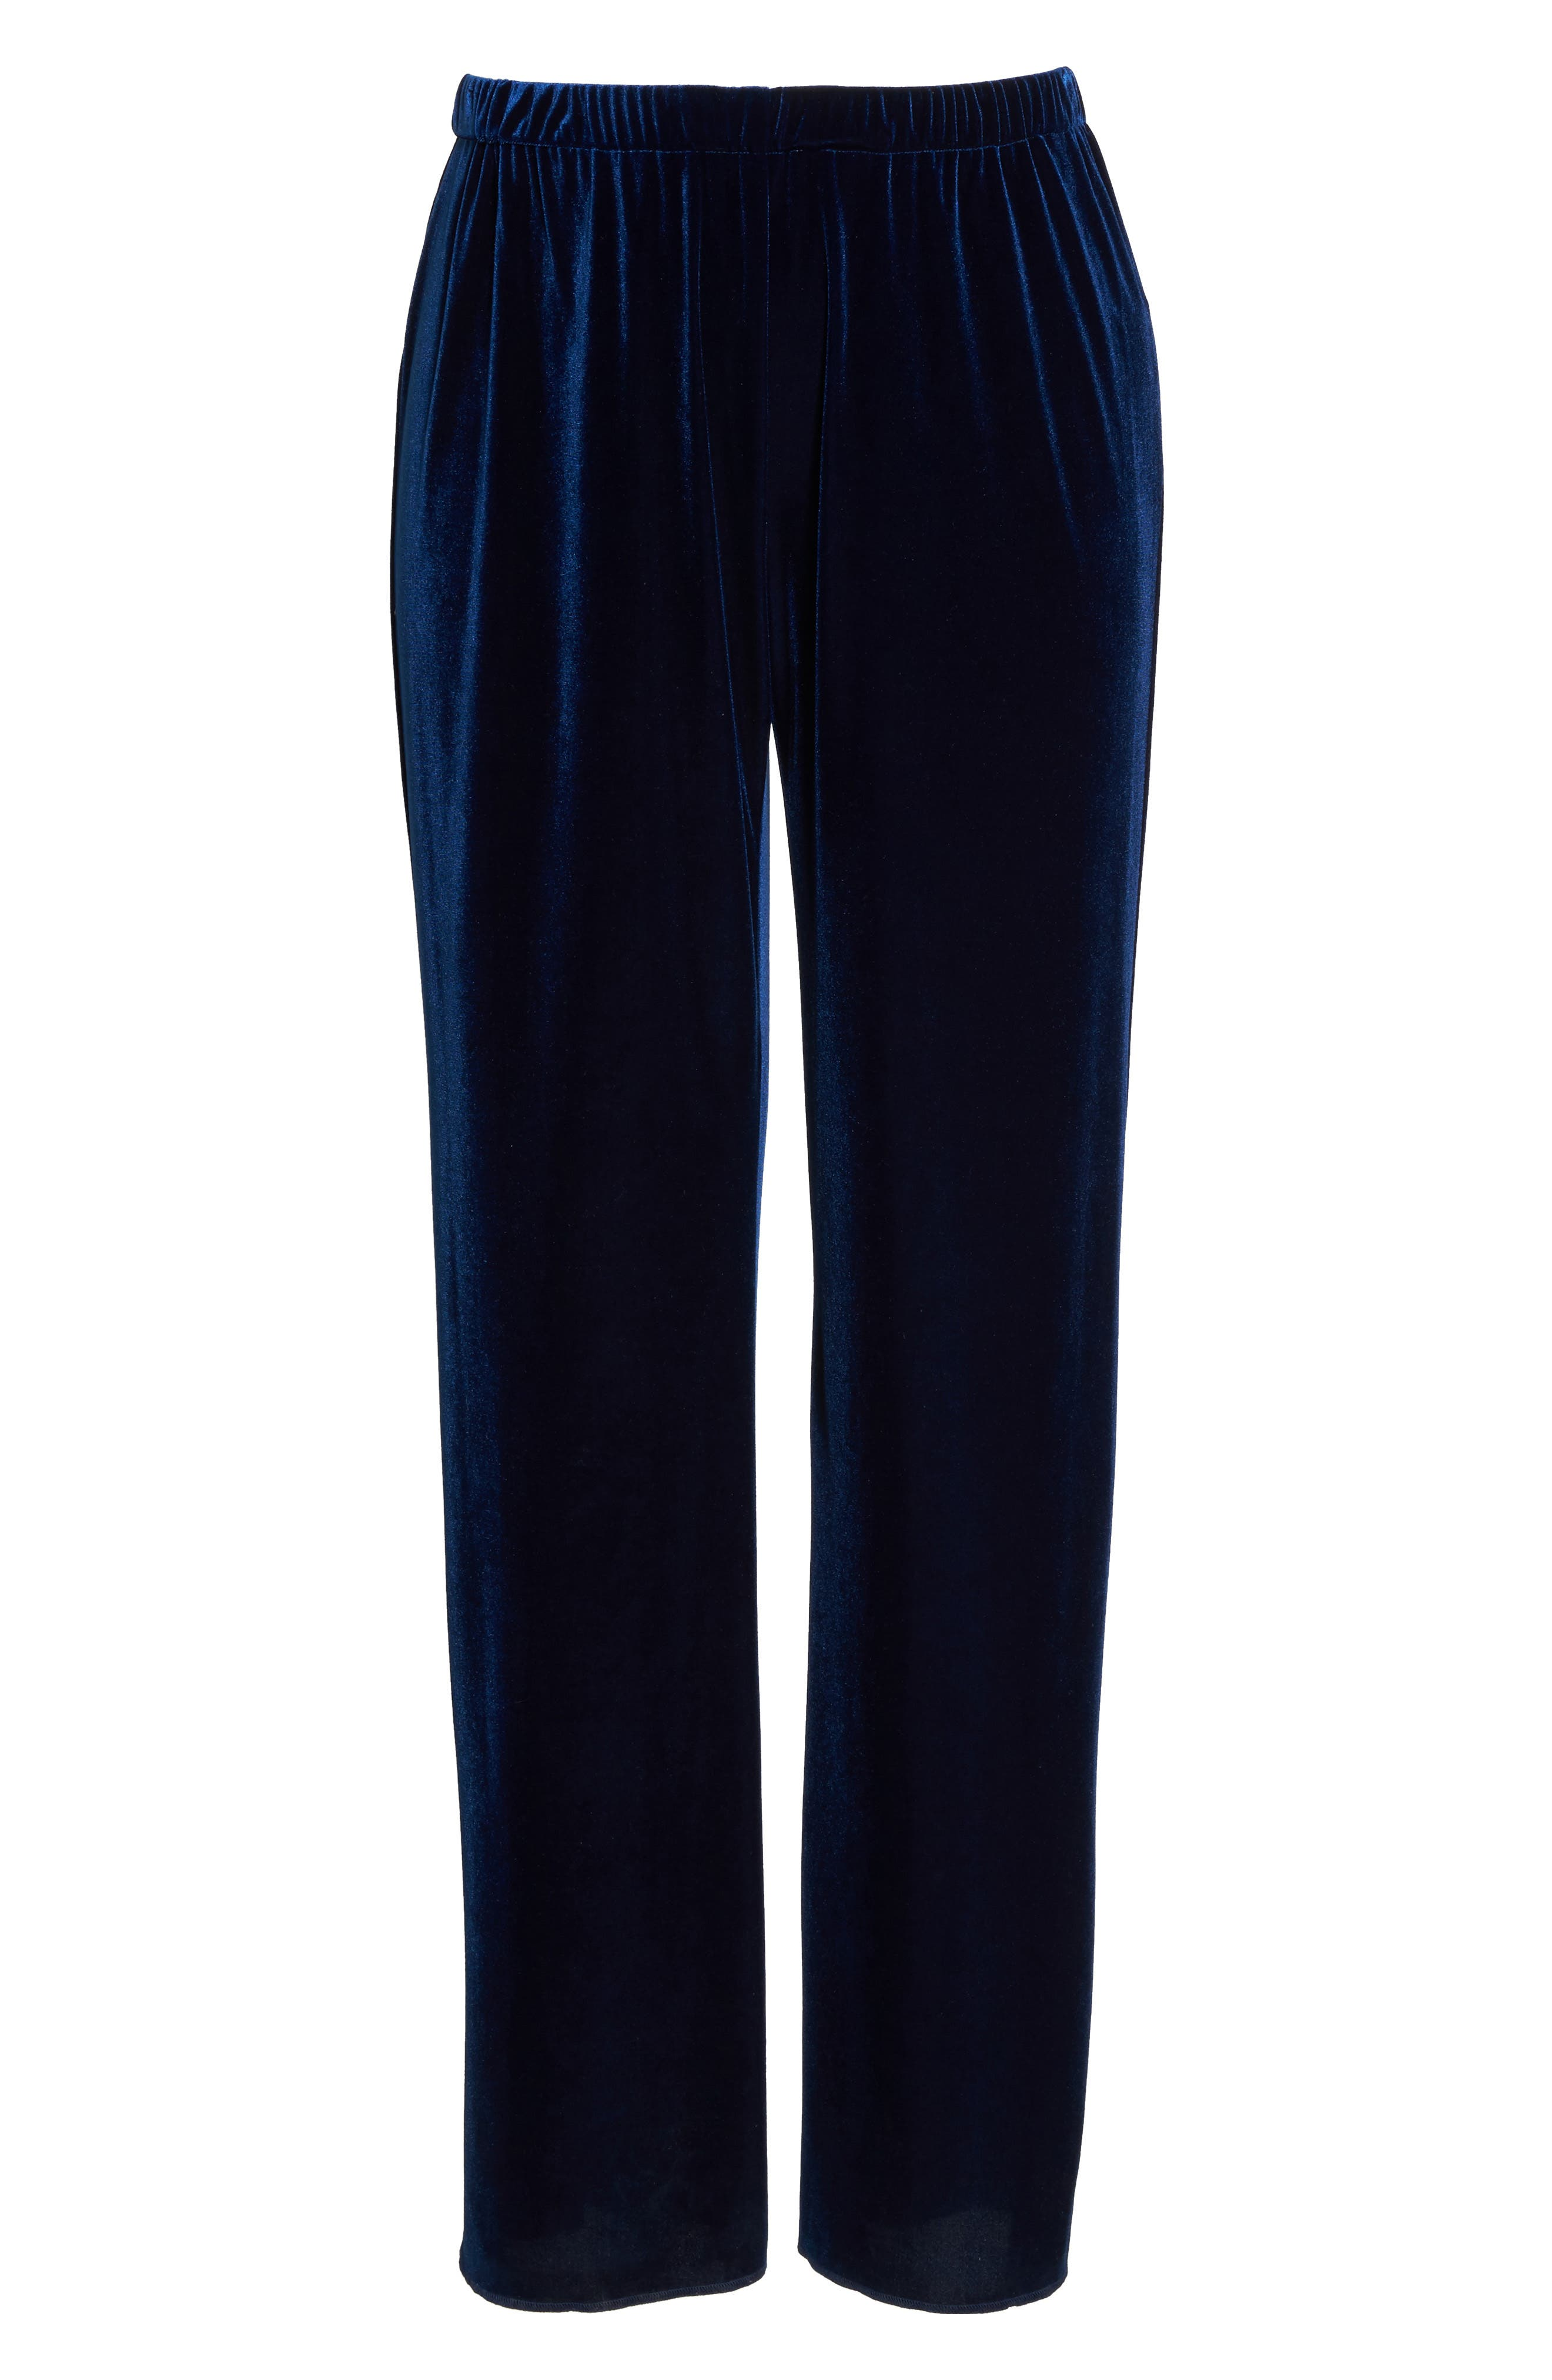 Rosita Velour Pants,                             Alternate thumbnail 6, color,                             411